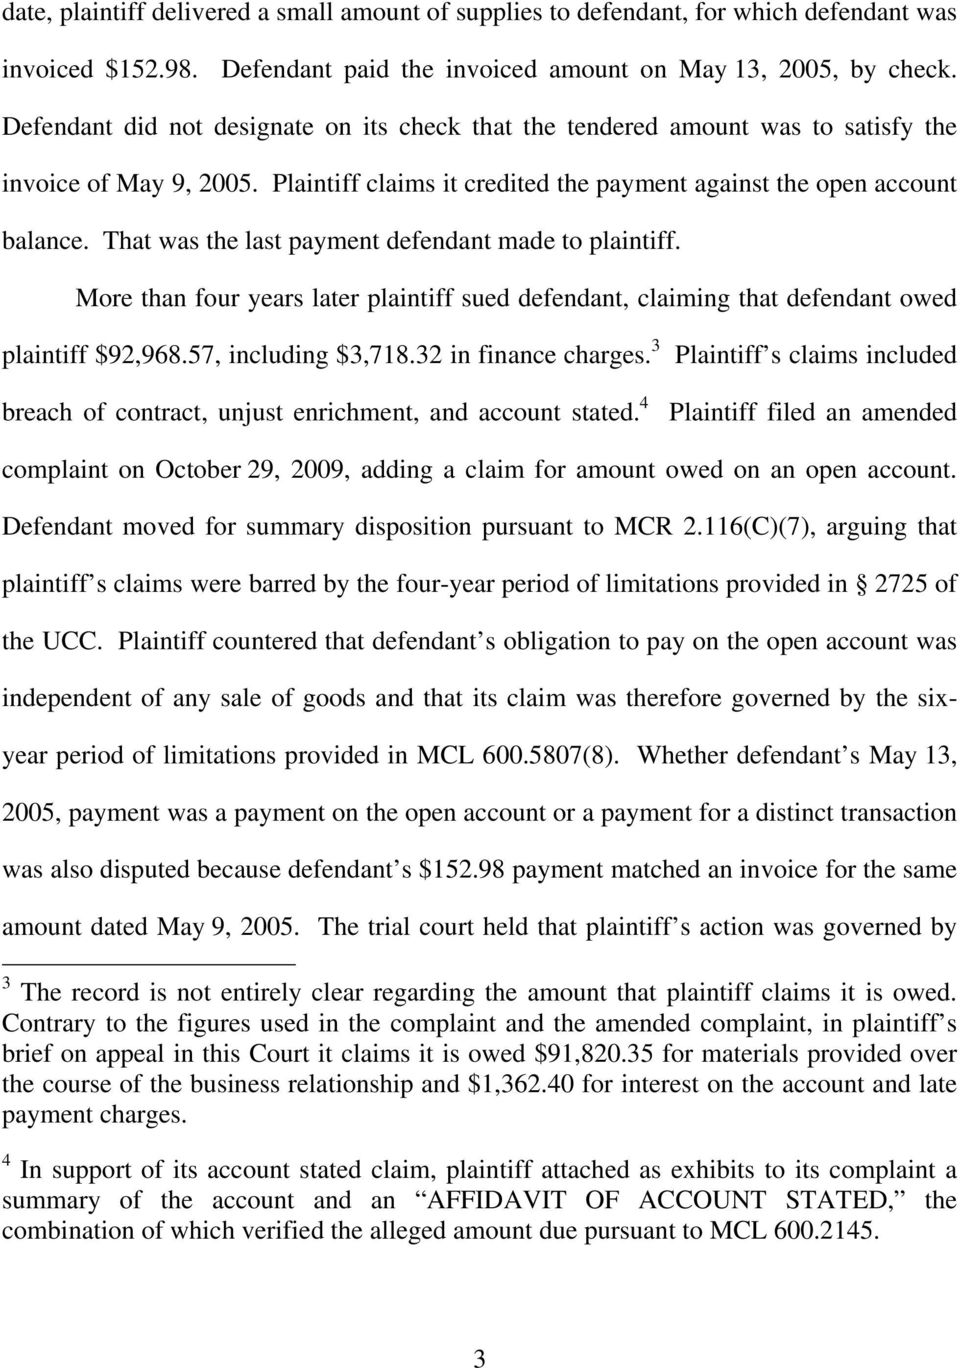 That was the last payment defendant made to plaintiff. More than four years later plaintiff sued defendant, claiming that defendant owed plaintiff $92,968.57, including $3,718.32 in finance charges.